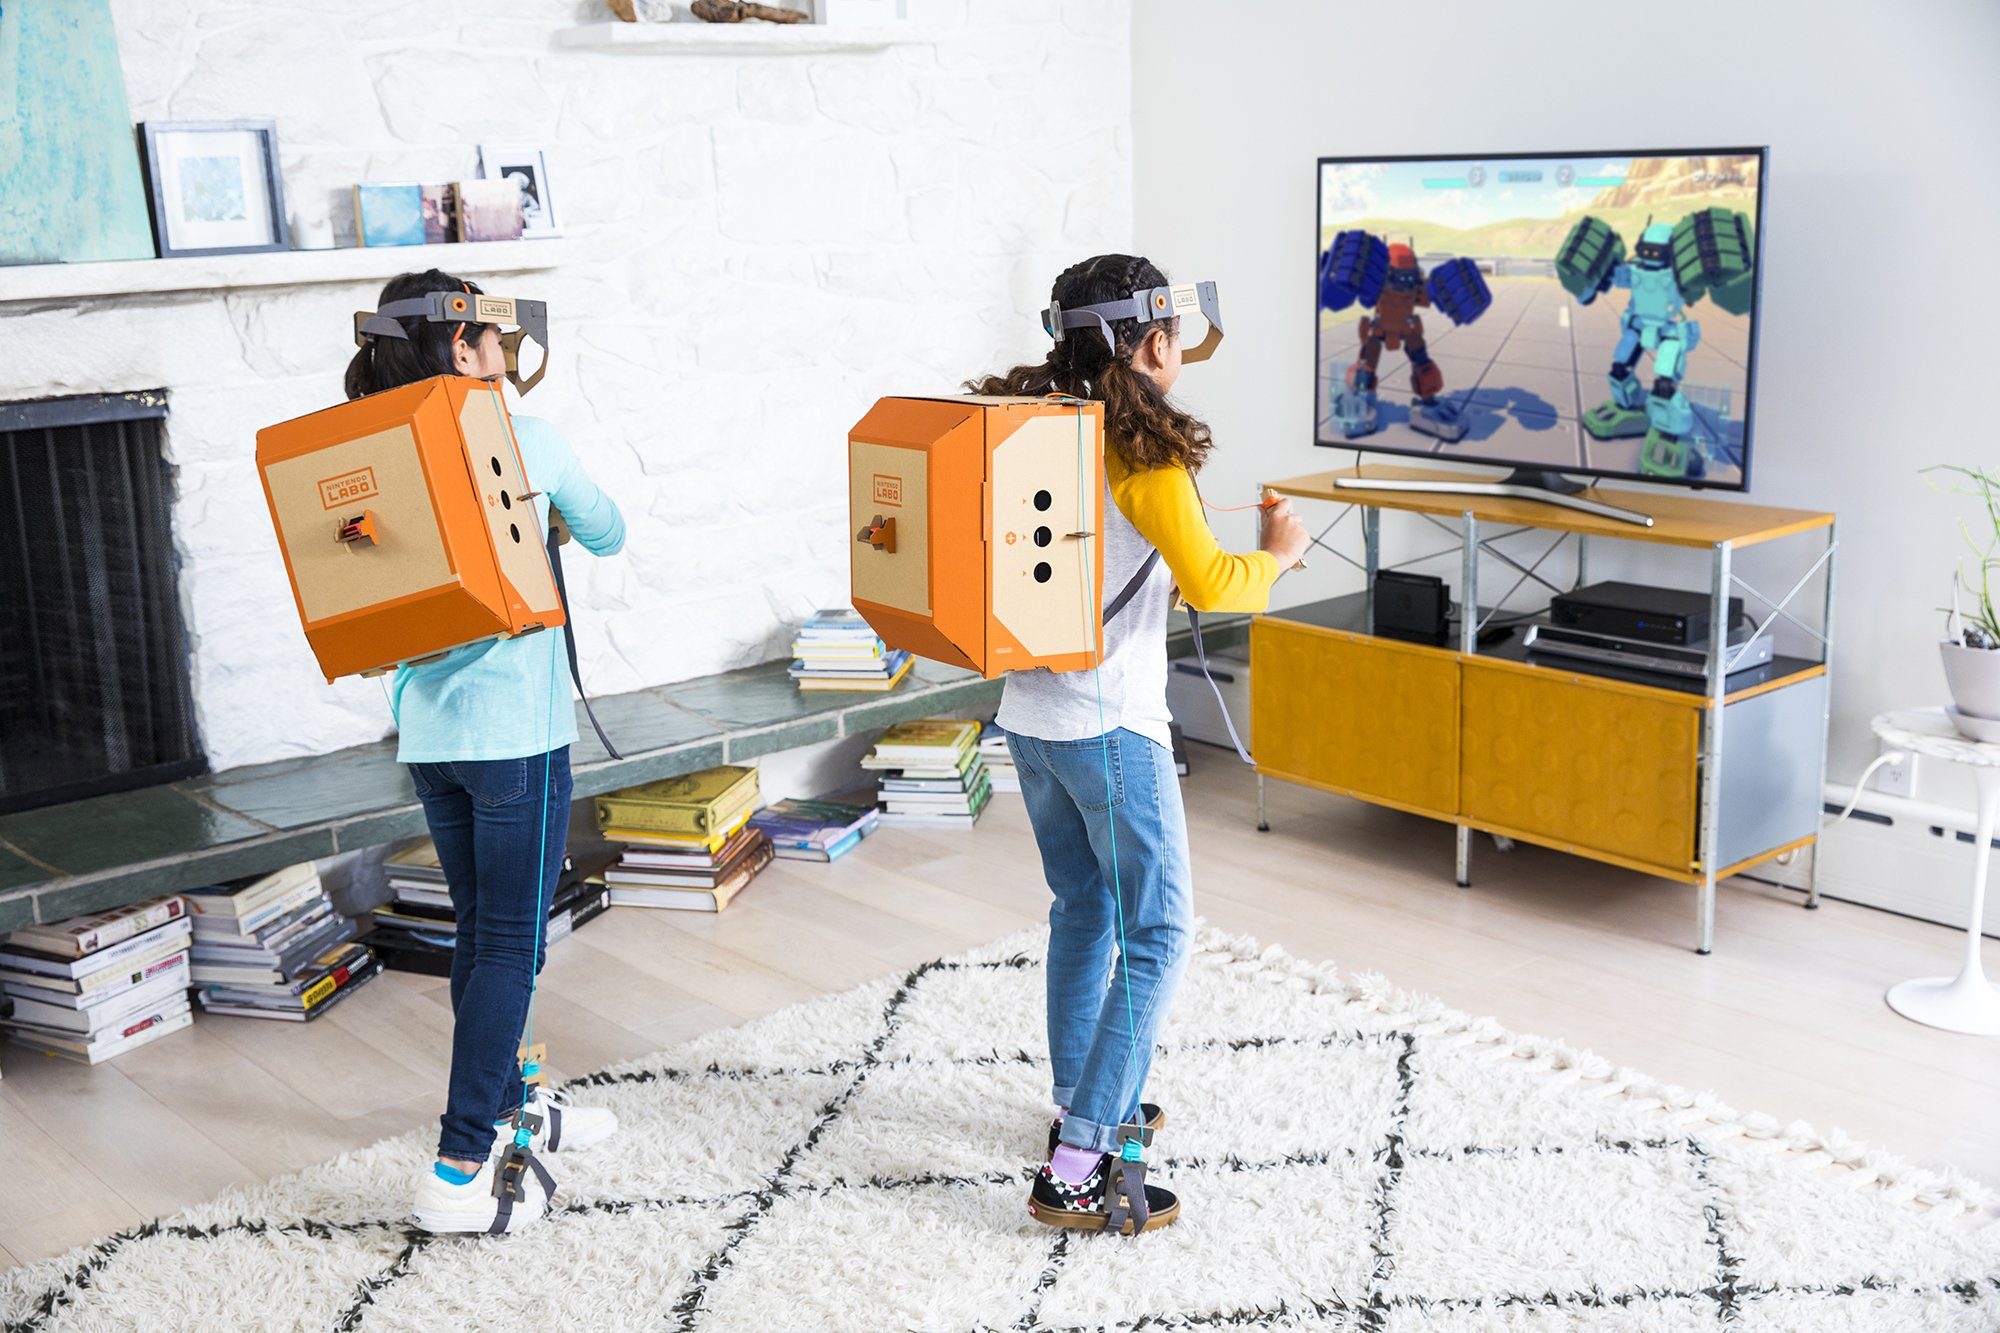 Nintendo Labo Robot Kit | Nintendo LABO Robot Kit for Nintendo Switch